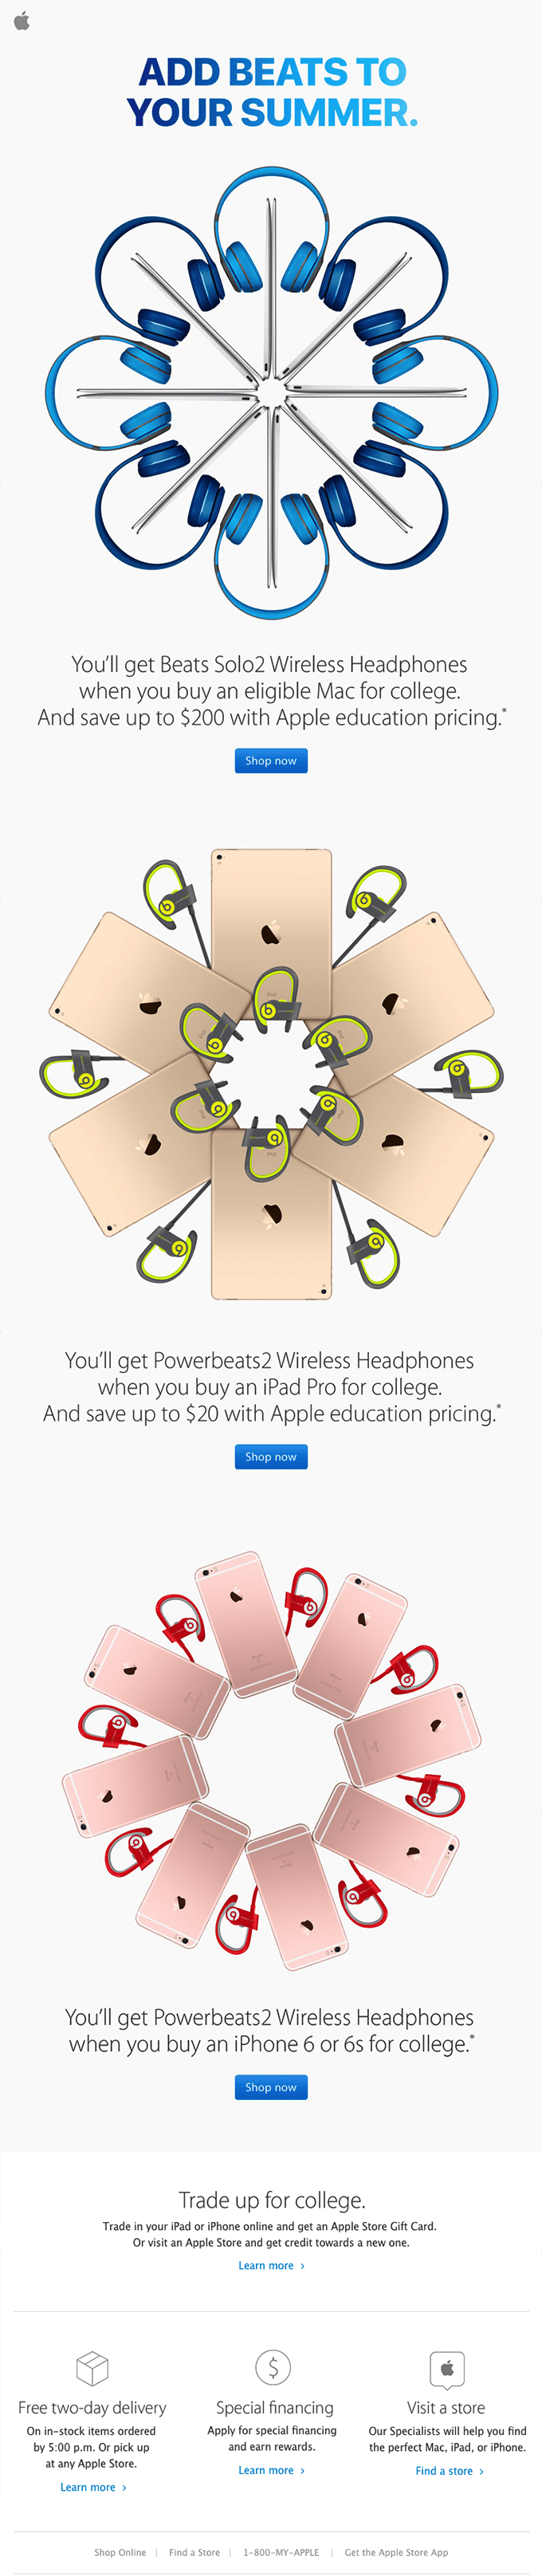 Great ecommerce email content by Apple Store